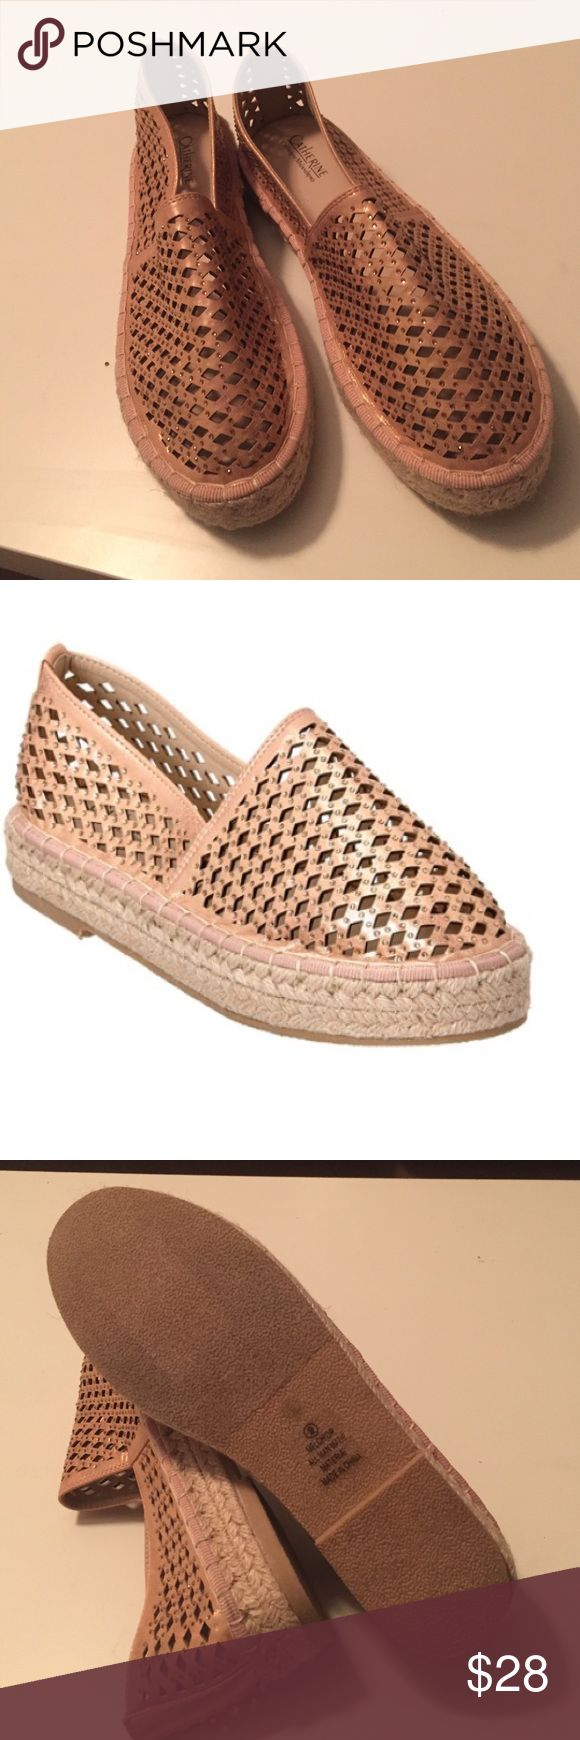 Catherine Malandrino platform espadrilles Catherine Malandrino espadrilles never used them,color rose gold . Catherine Malandrino Shoes Espadrilles